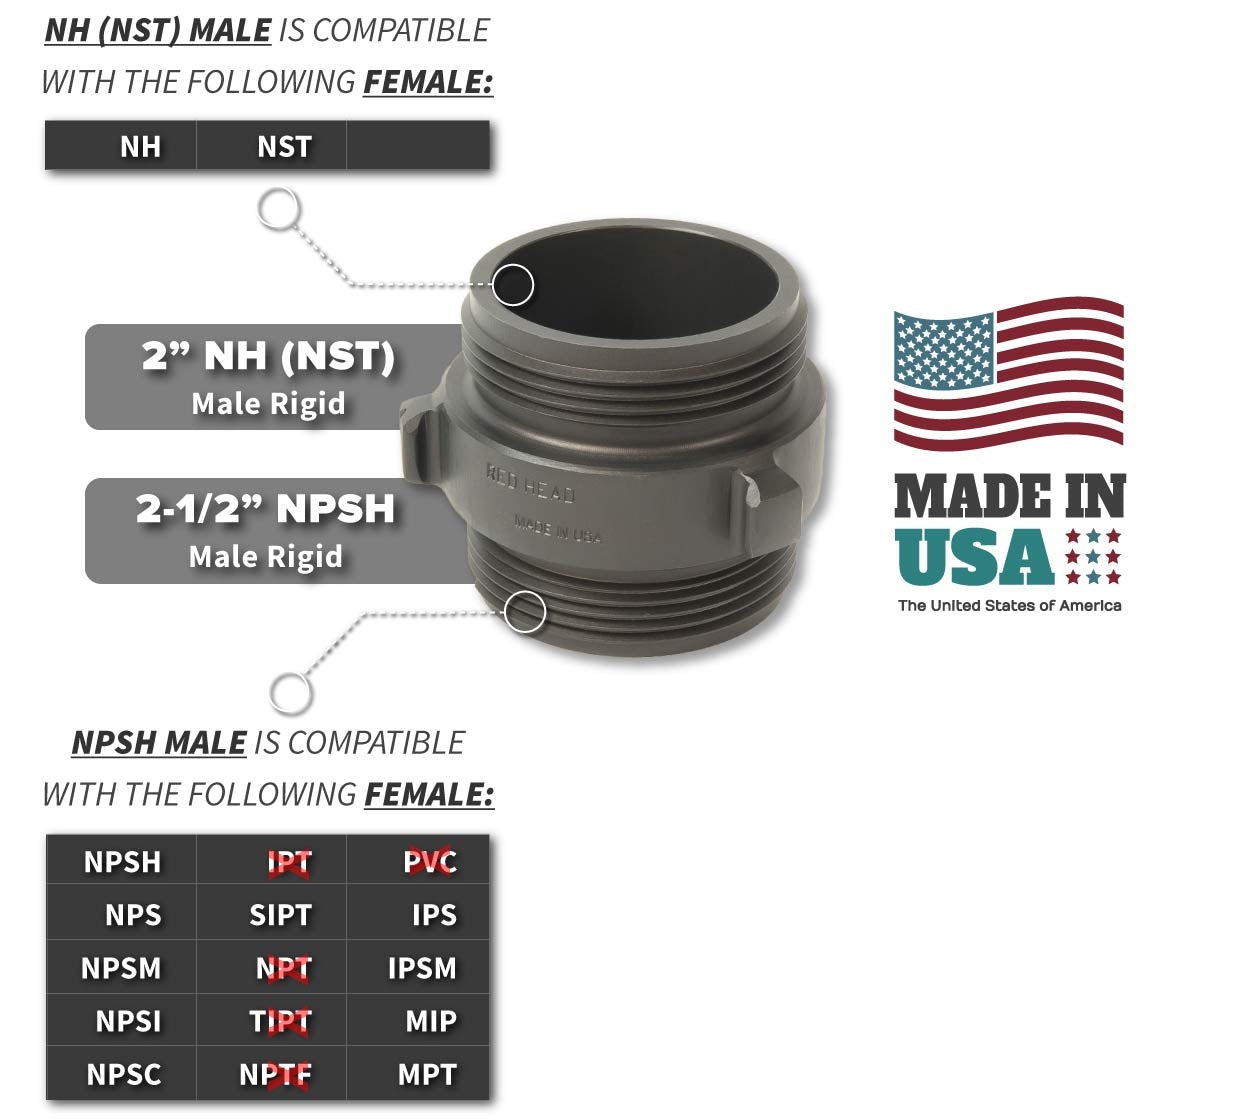 2 Inch NH-NST Male x 2.5 Inch NPSH Male Compatibility Thread Chart